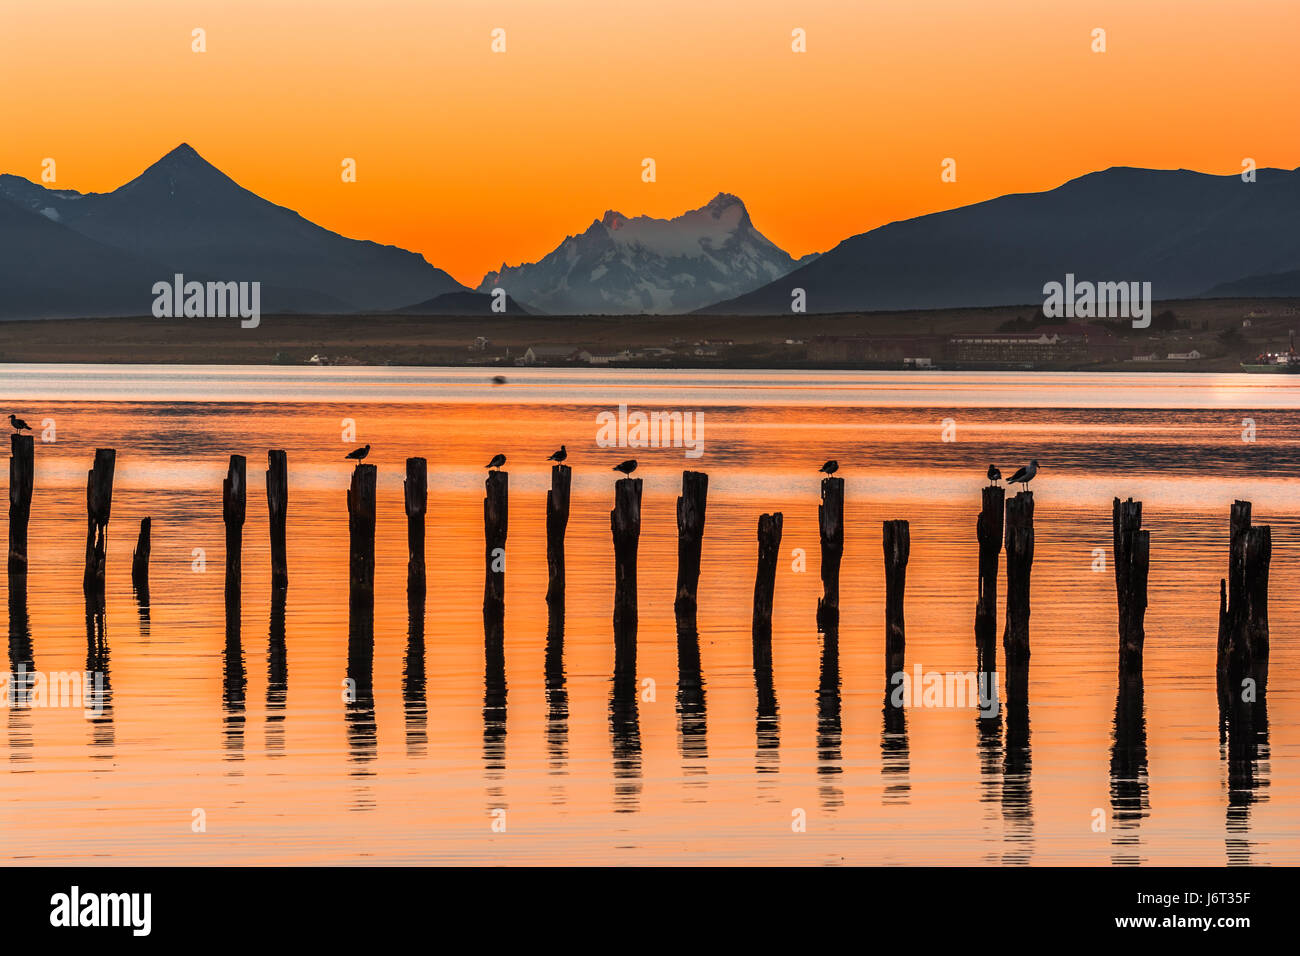 Gulf Almirante Montt,Puerto Natales, Chile - Pacific Ocean waters in Chile, Patagonia, Magallanes Region at sunset - Stock Image